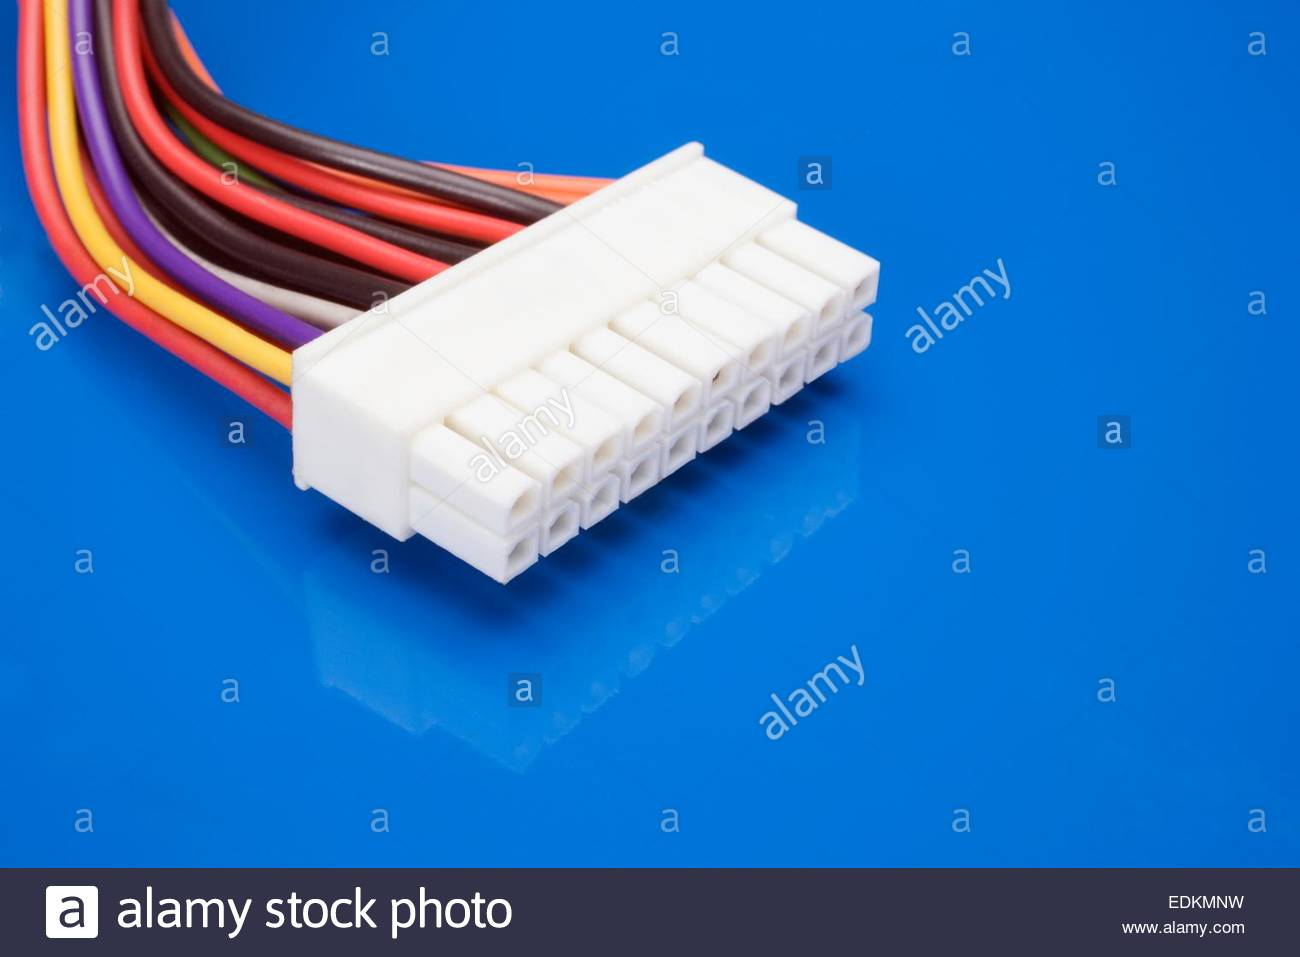 Stock Photo - Wires and Wires